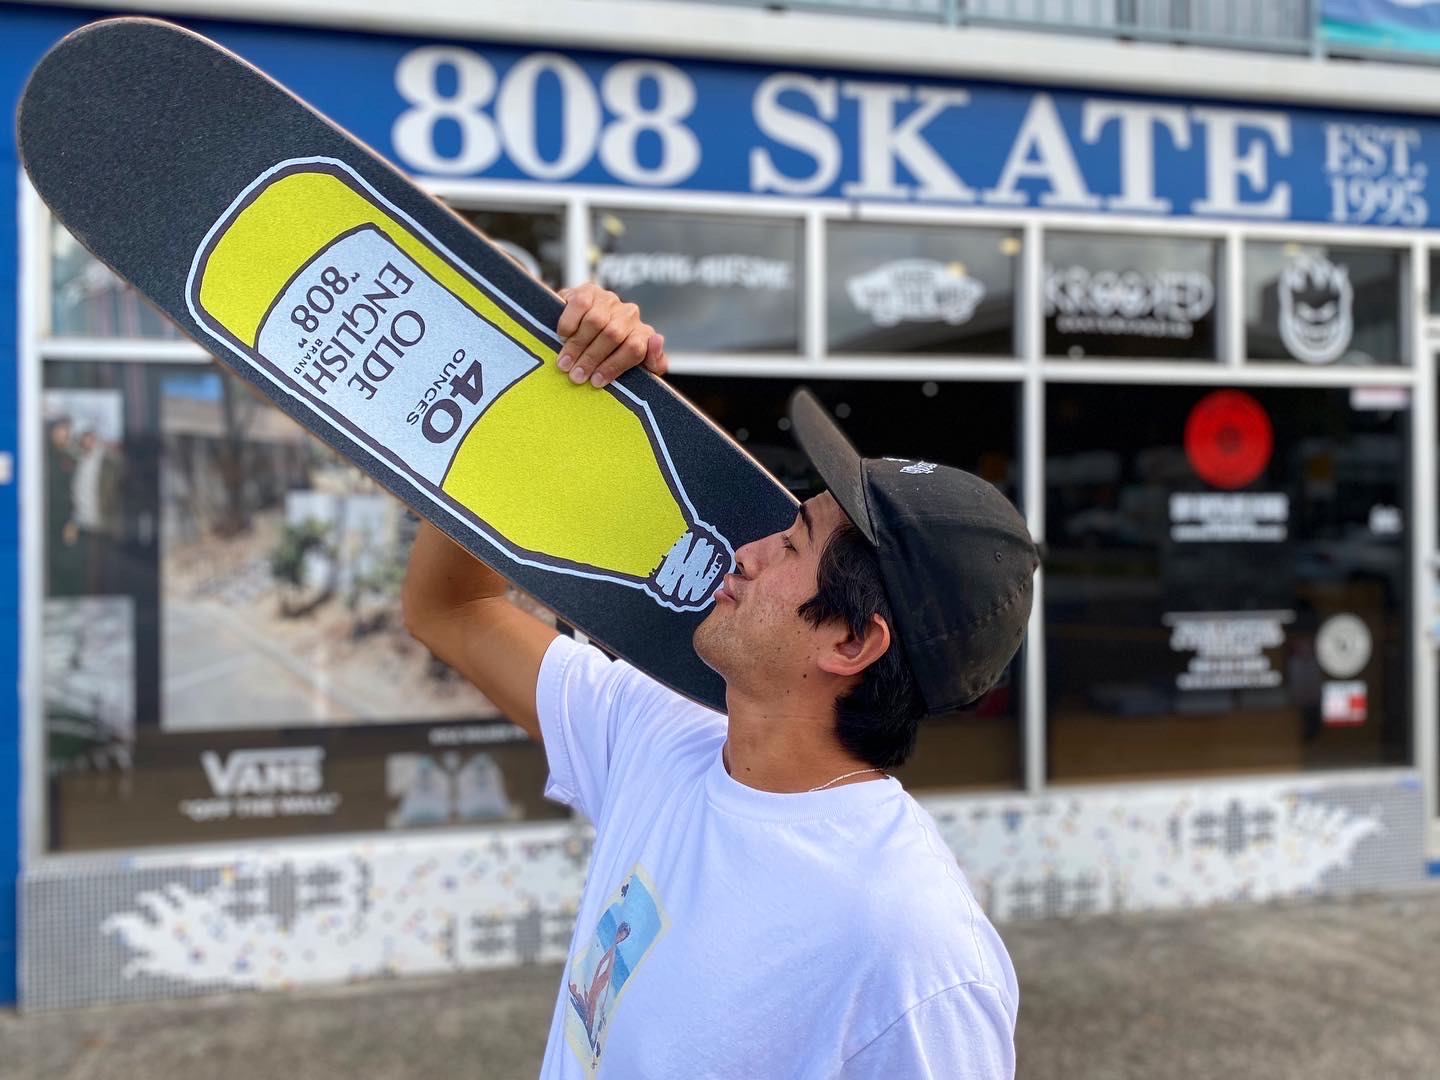 808 Skate 40oz. graphic Jessup Grip now available in-store | online